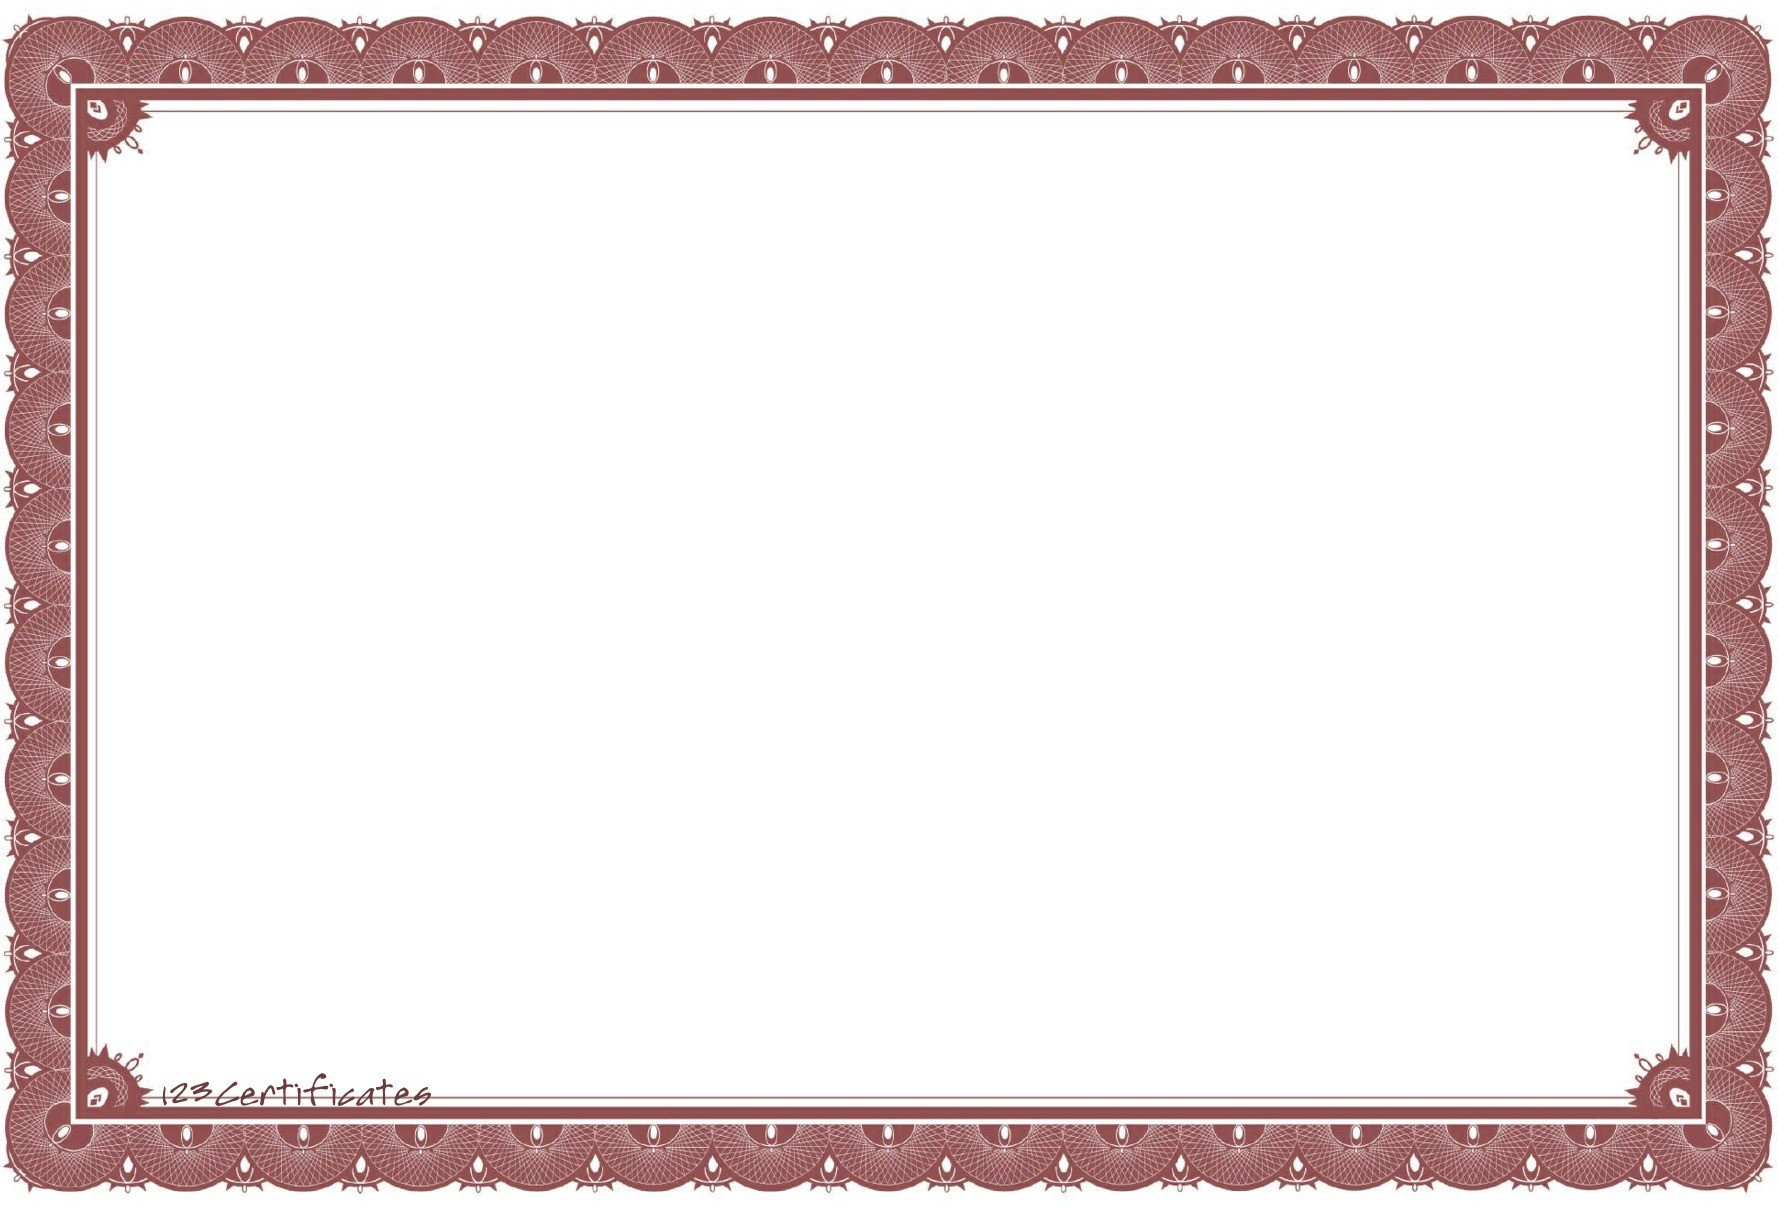 Photo frame images free download clipart svg freeuse stock Free Downloadable Borders And Frames Clipart - Clip Art Library svg freeuse stock